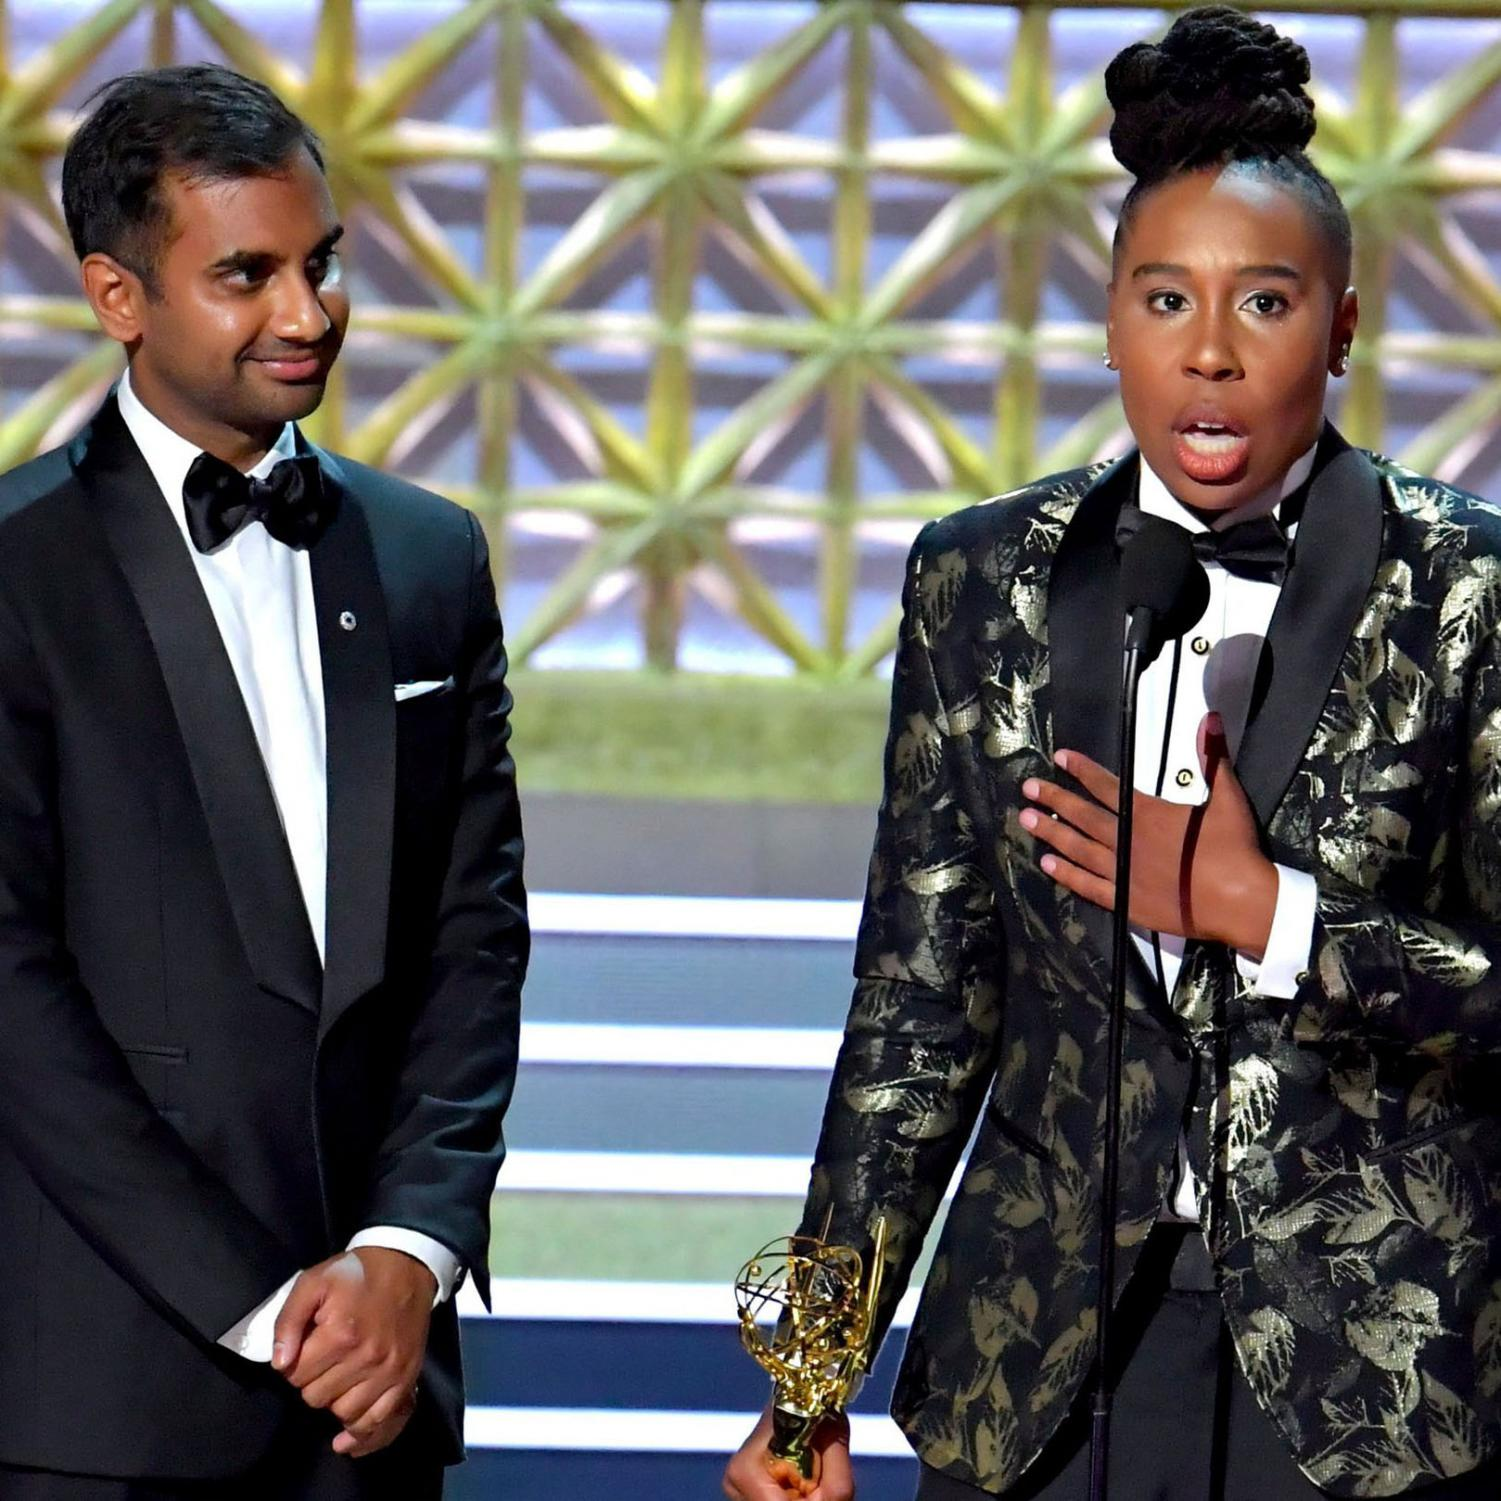 Lena Waithe became the first African-American woman to win an Emmy for Best Writing in a Comedy Series. She is an actress and writer for the Netflix show, Master of None.